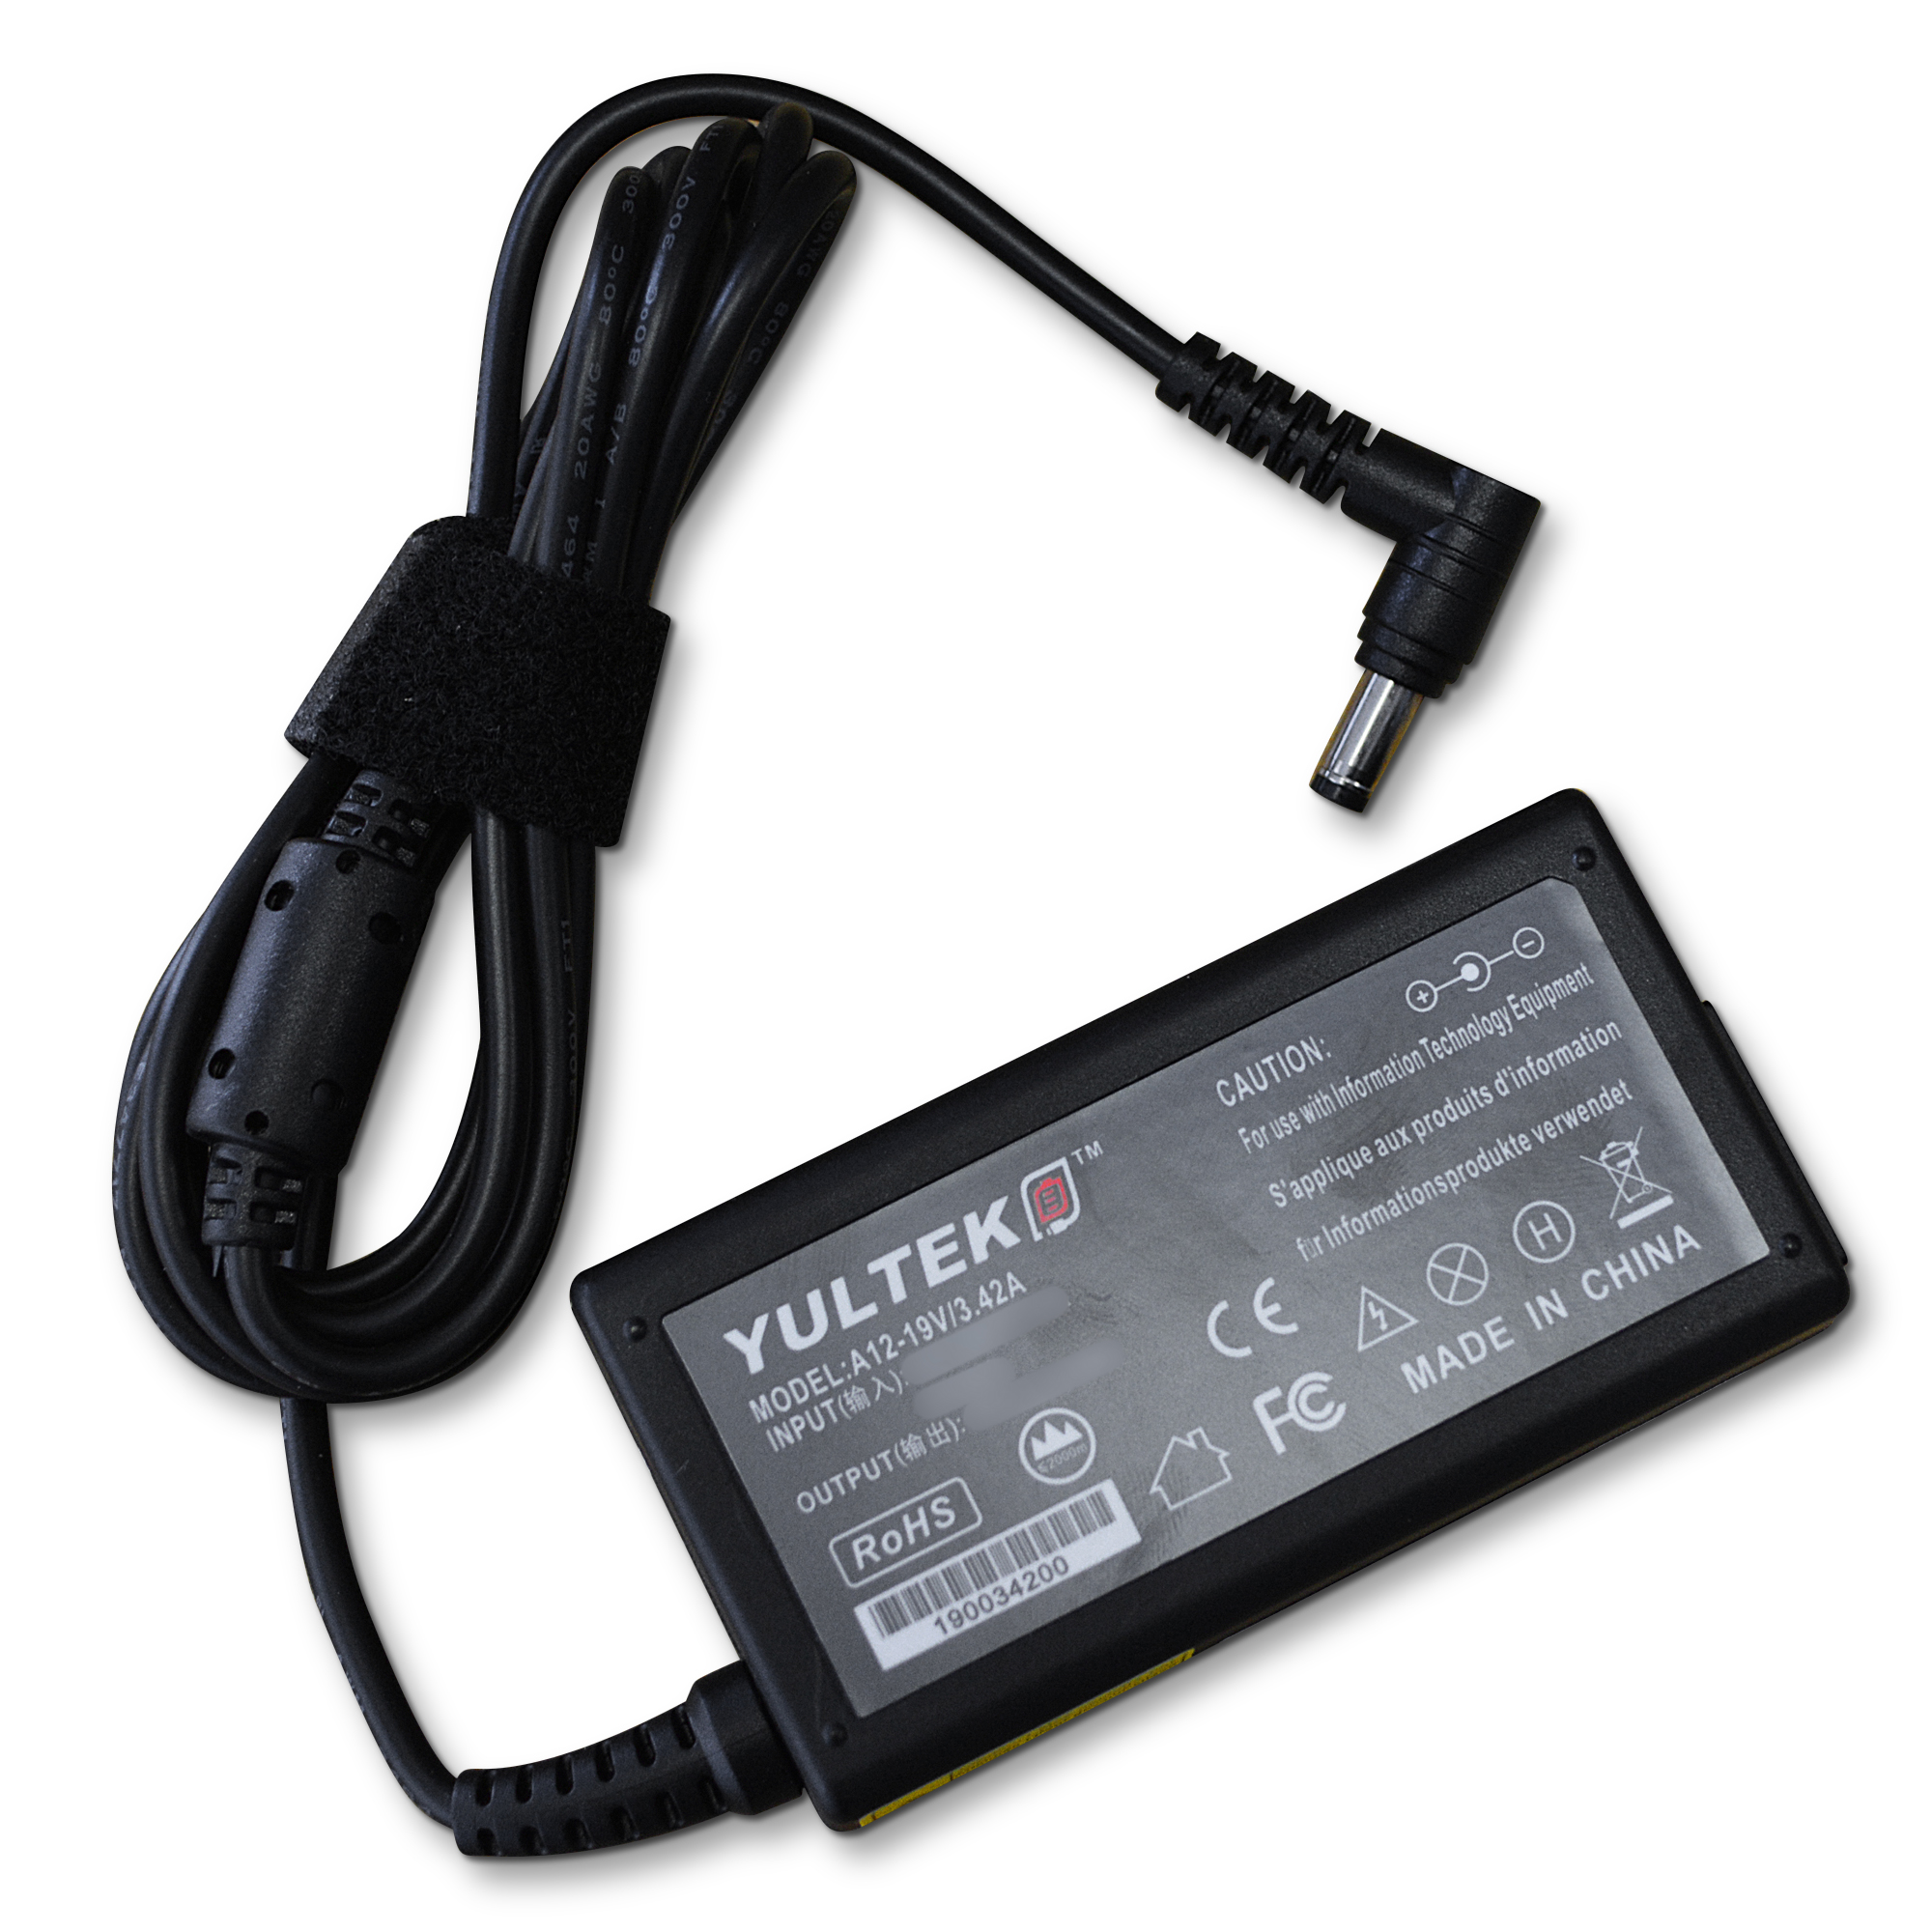 Fujitsu-Siemens Part Number QUT:1ACYZZZFX49 Laptop Charger